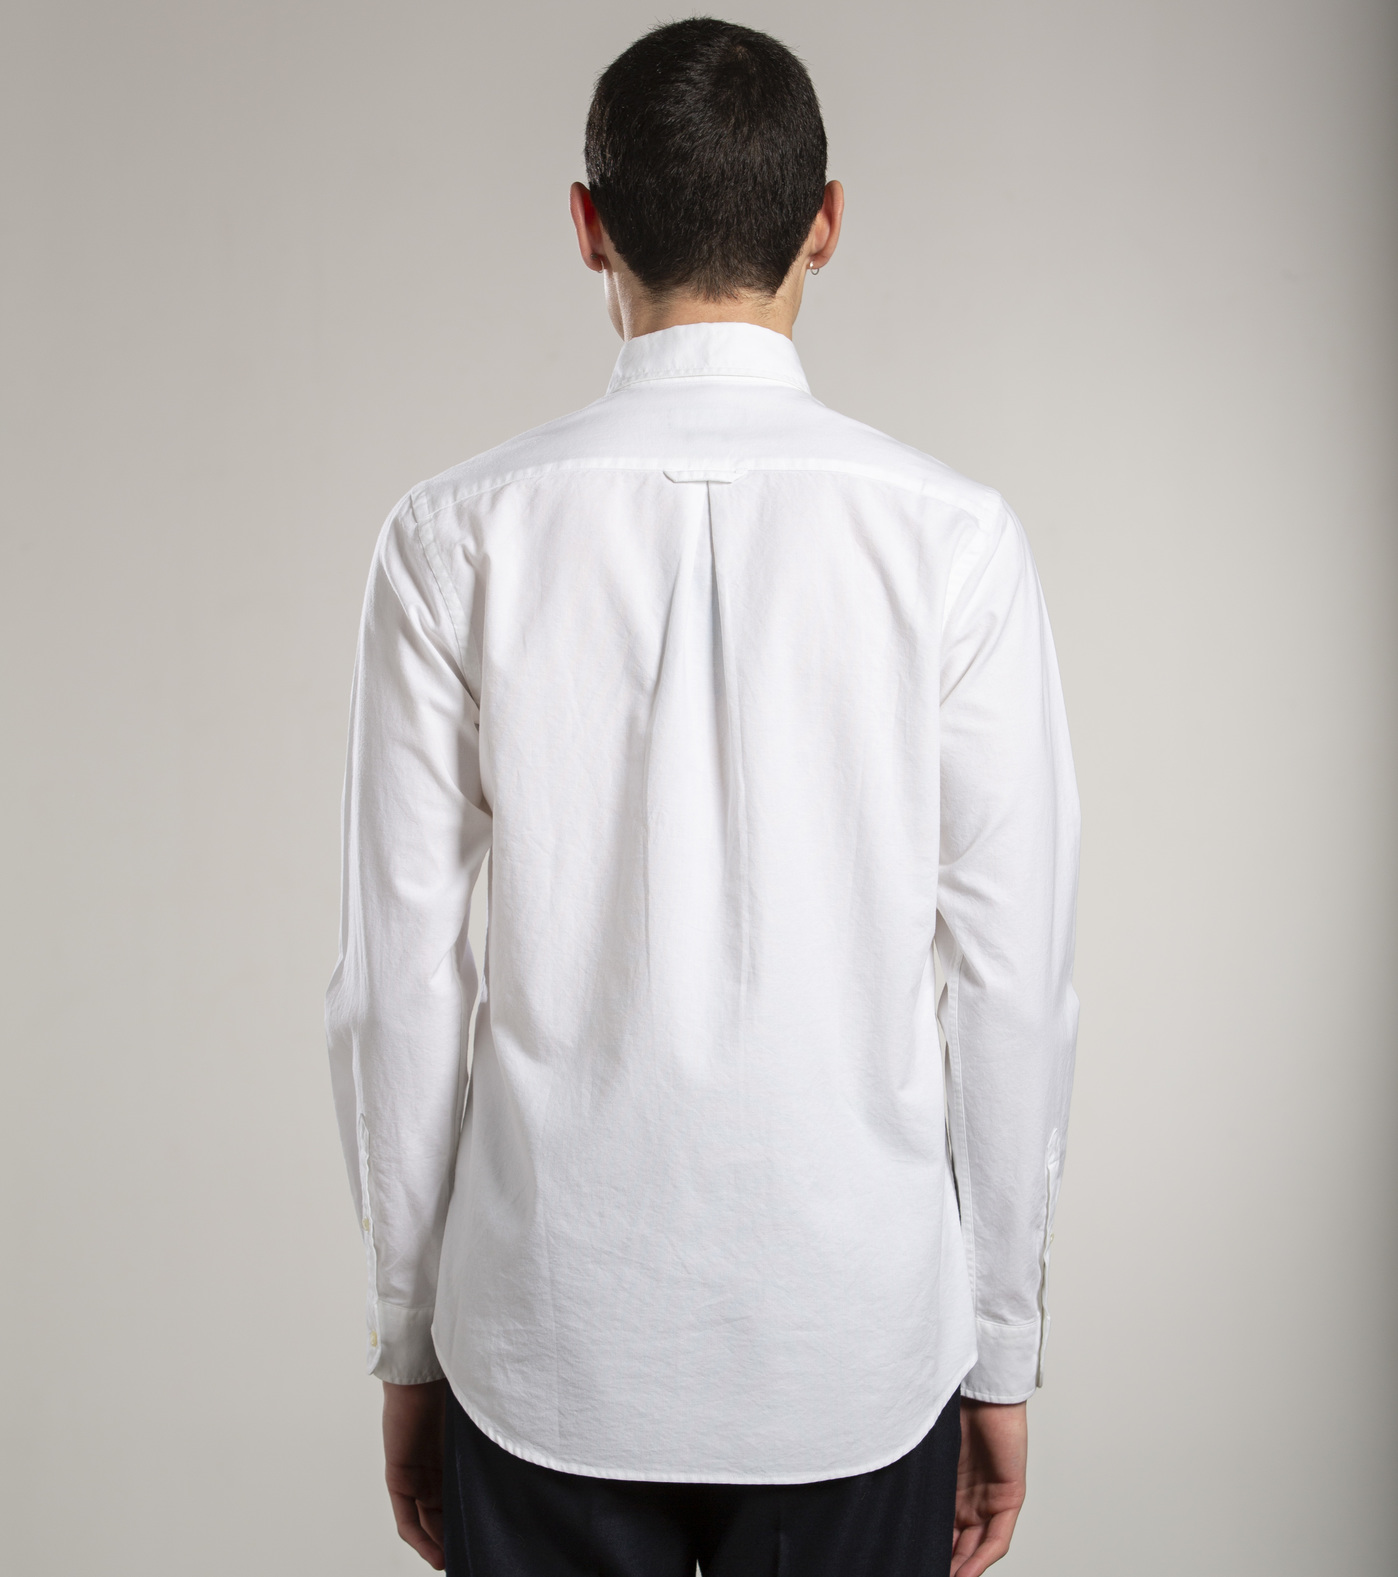 SHIRT EUDES LOVE GUN - White